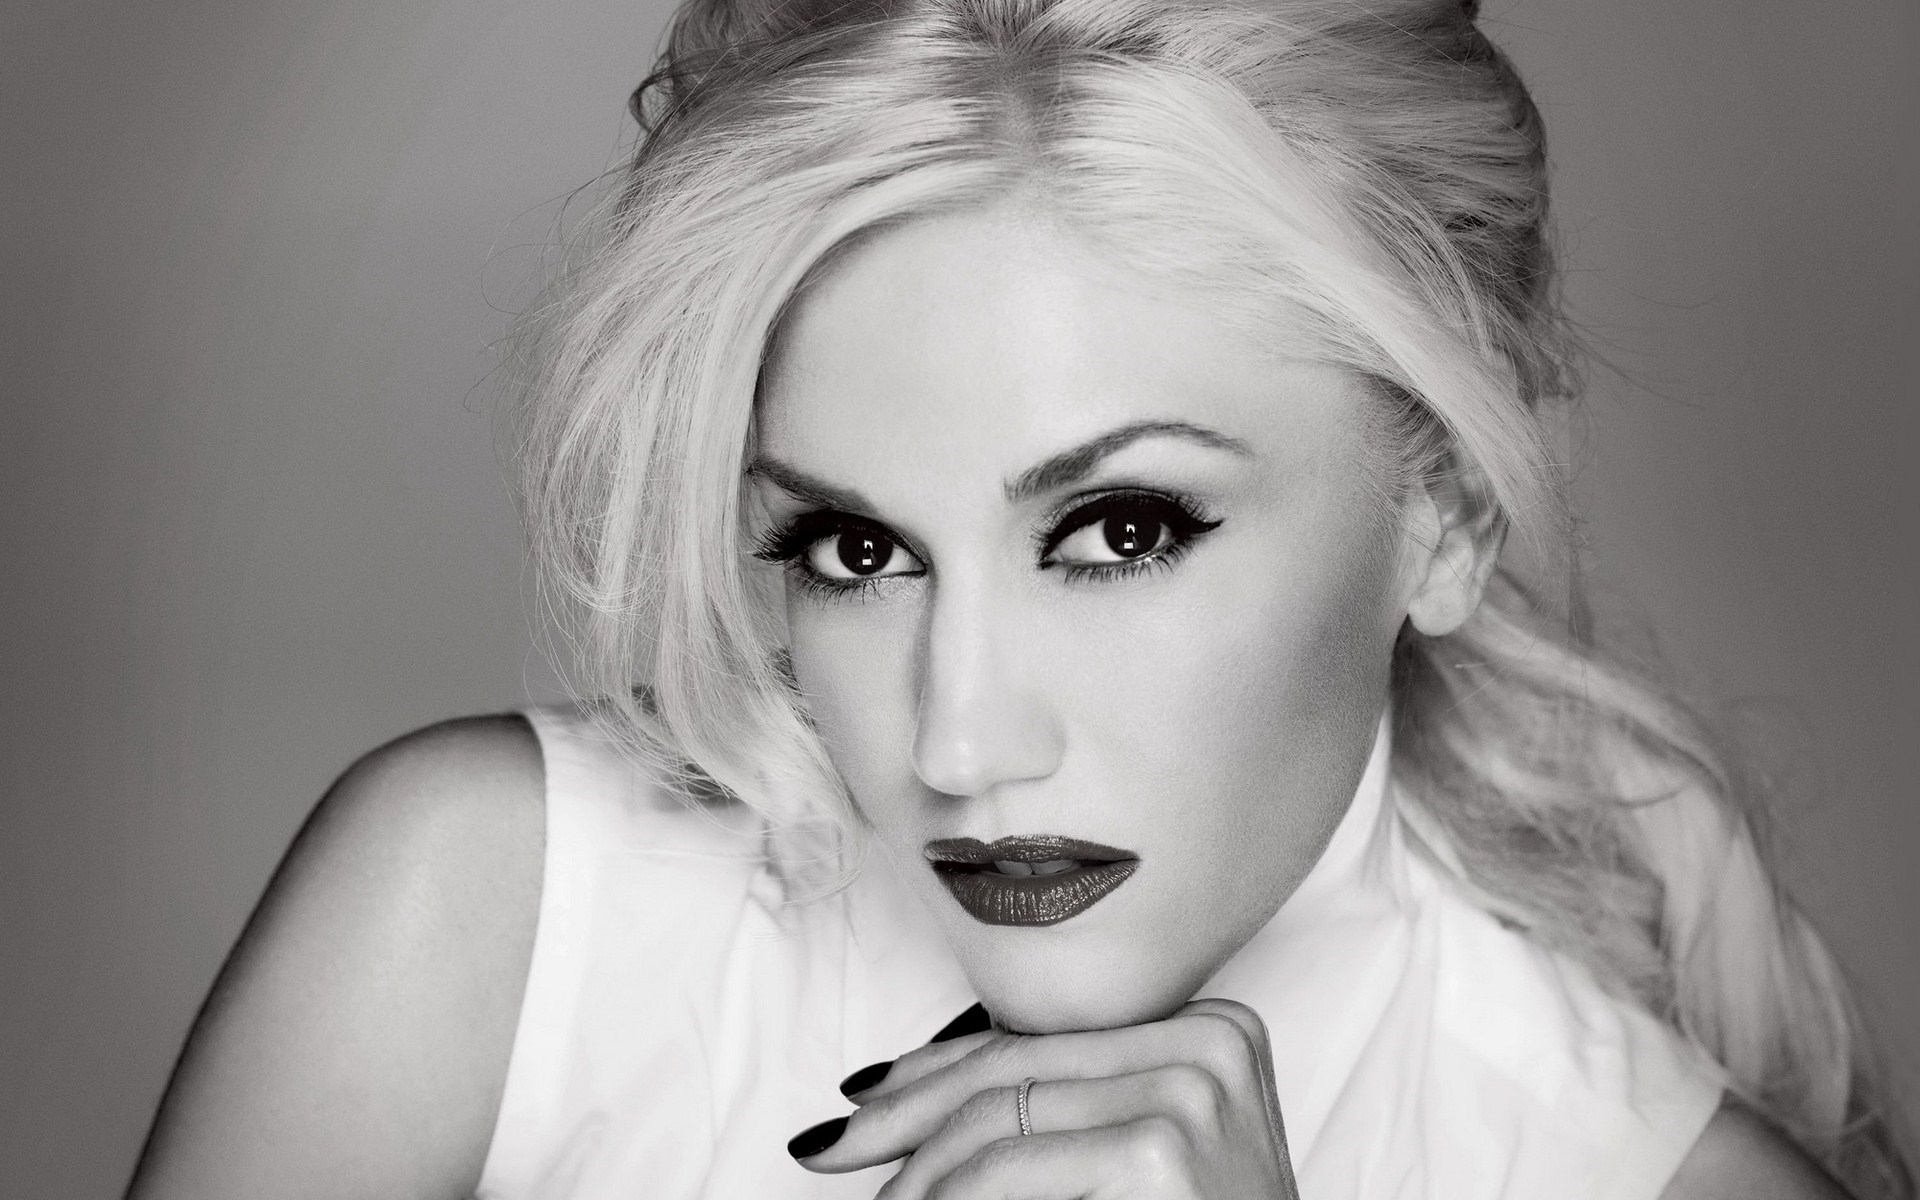 Gwen Stefani Beauty Singer Music